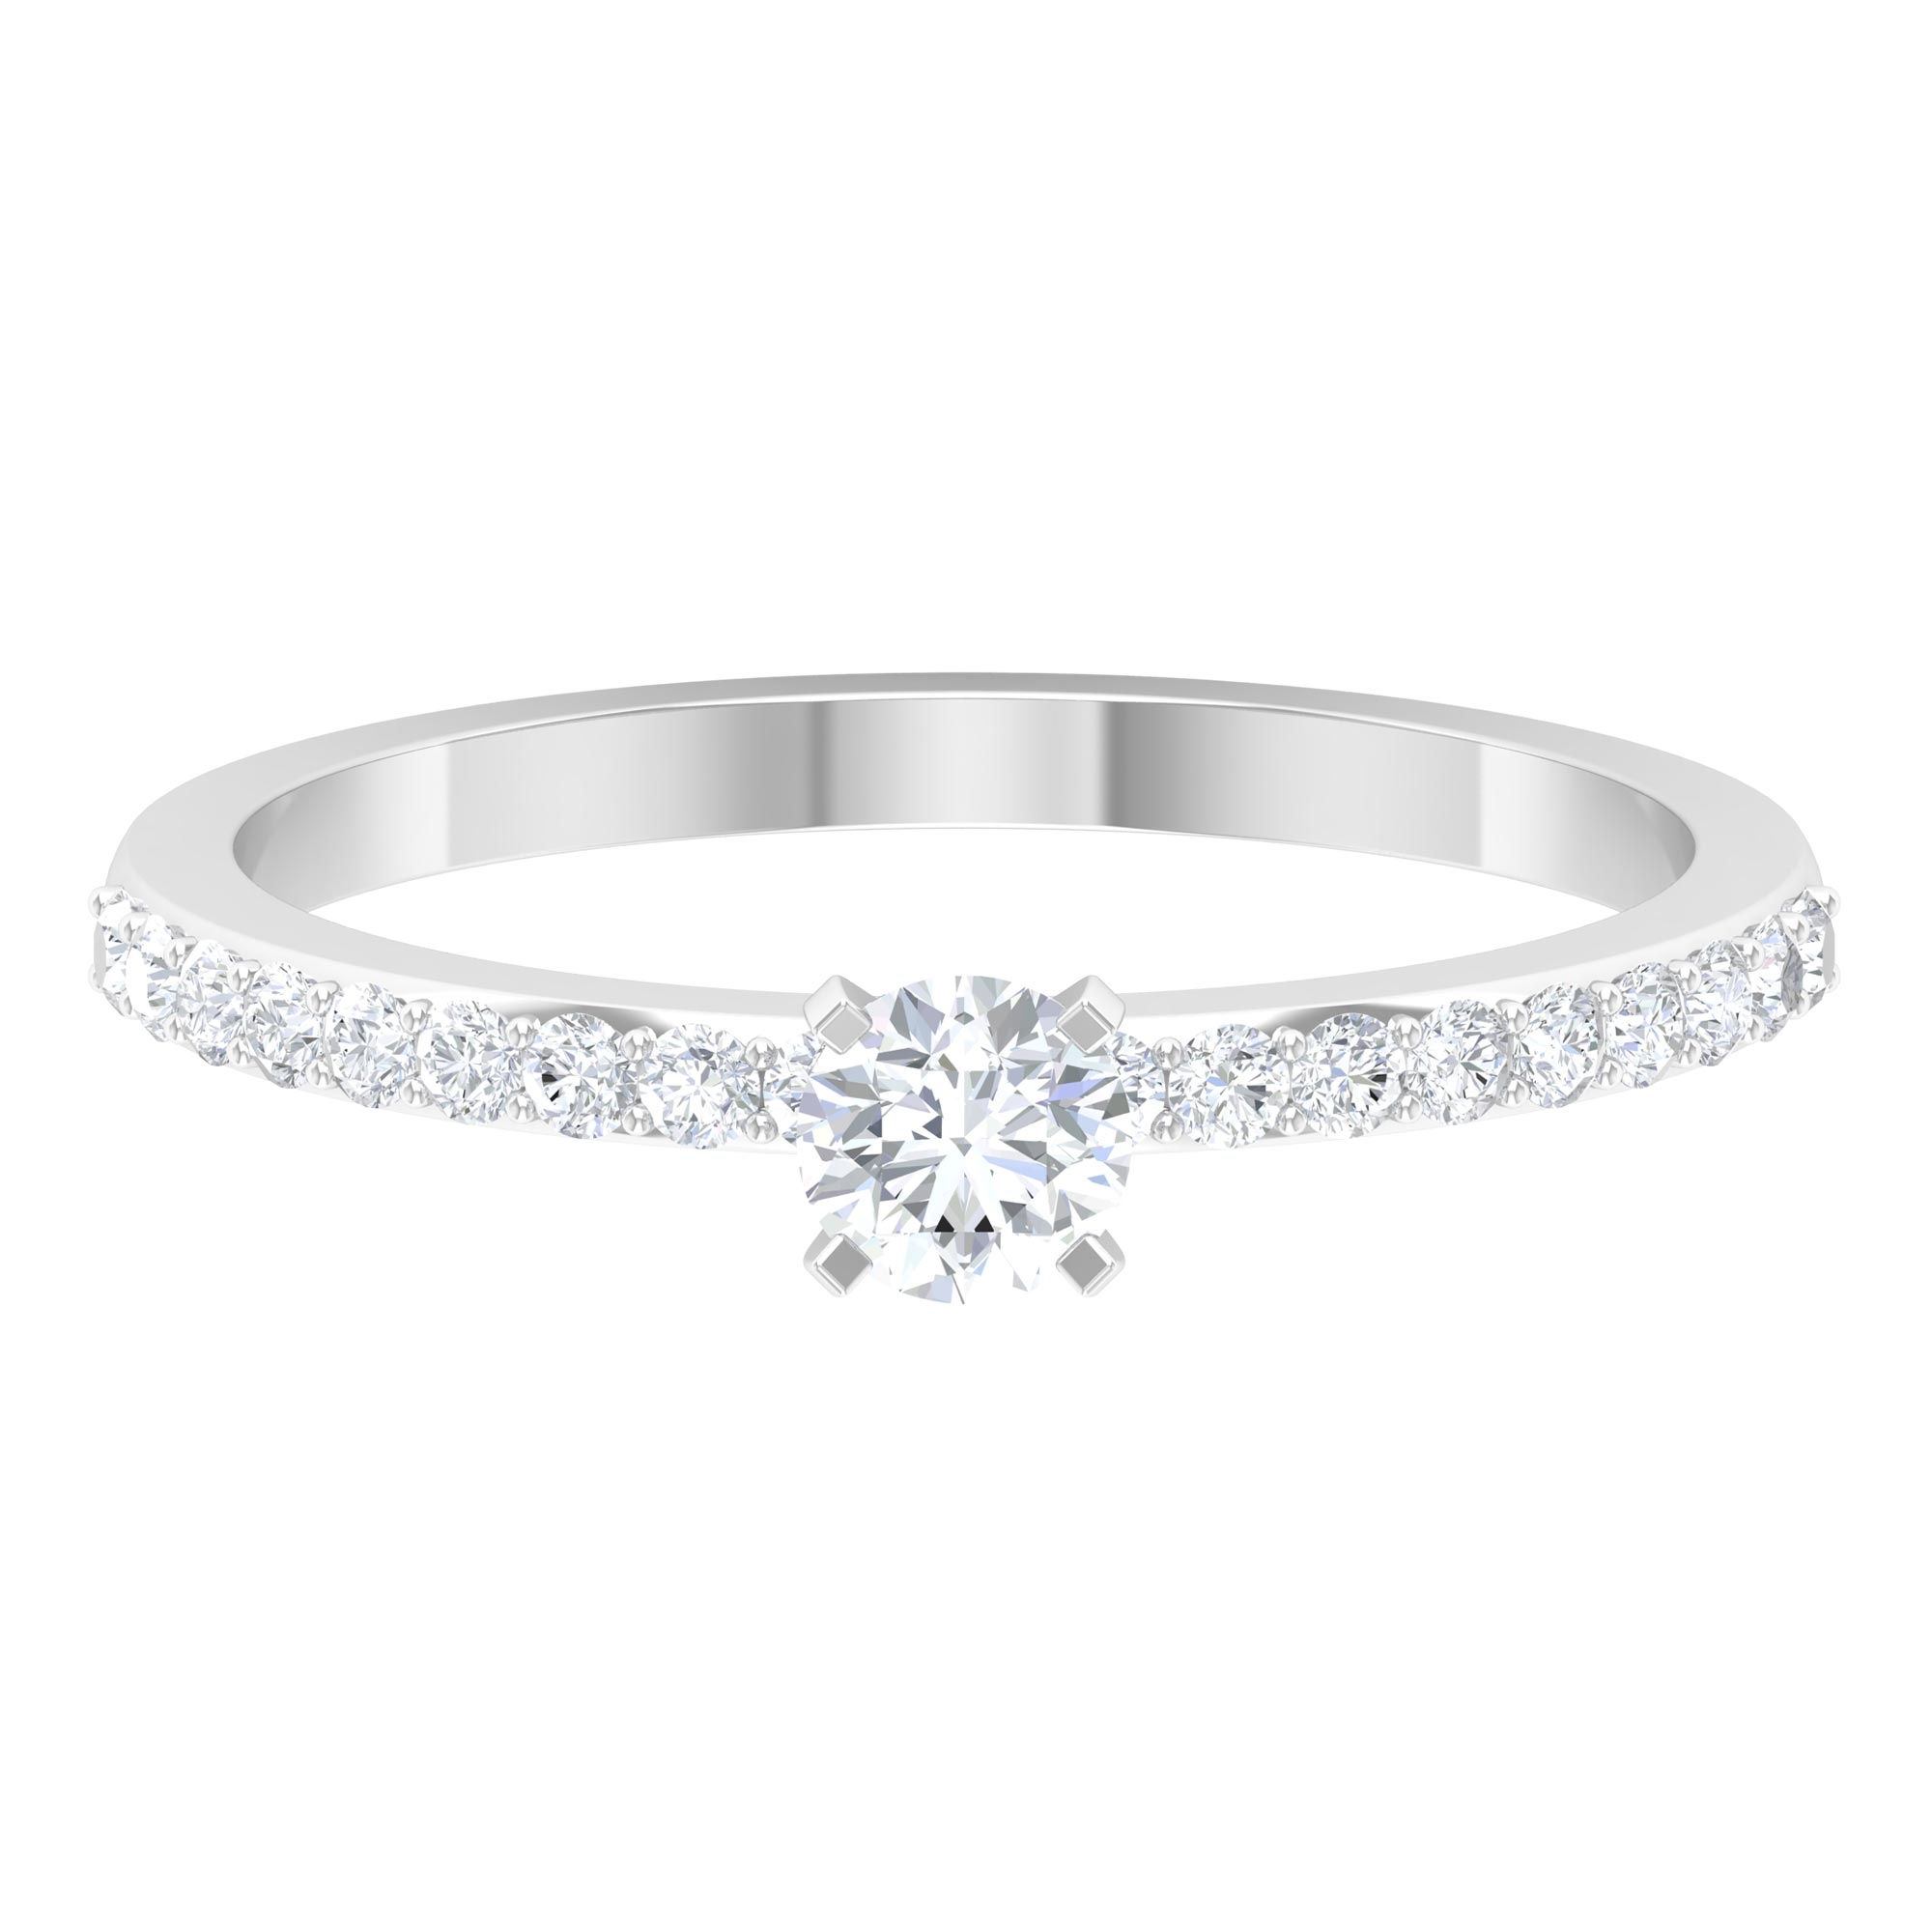 1/2 CT Round Cut Diamond Solitaire Ring in Square Prong Setting with Surface Side Stones